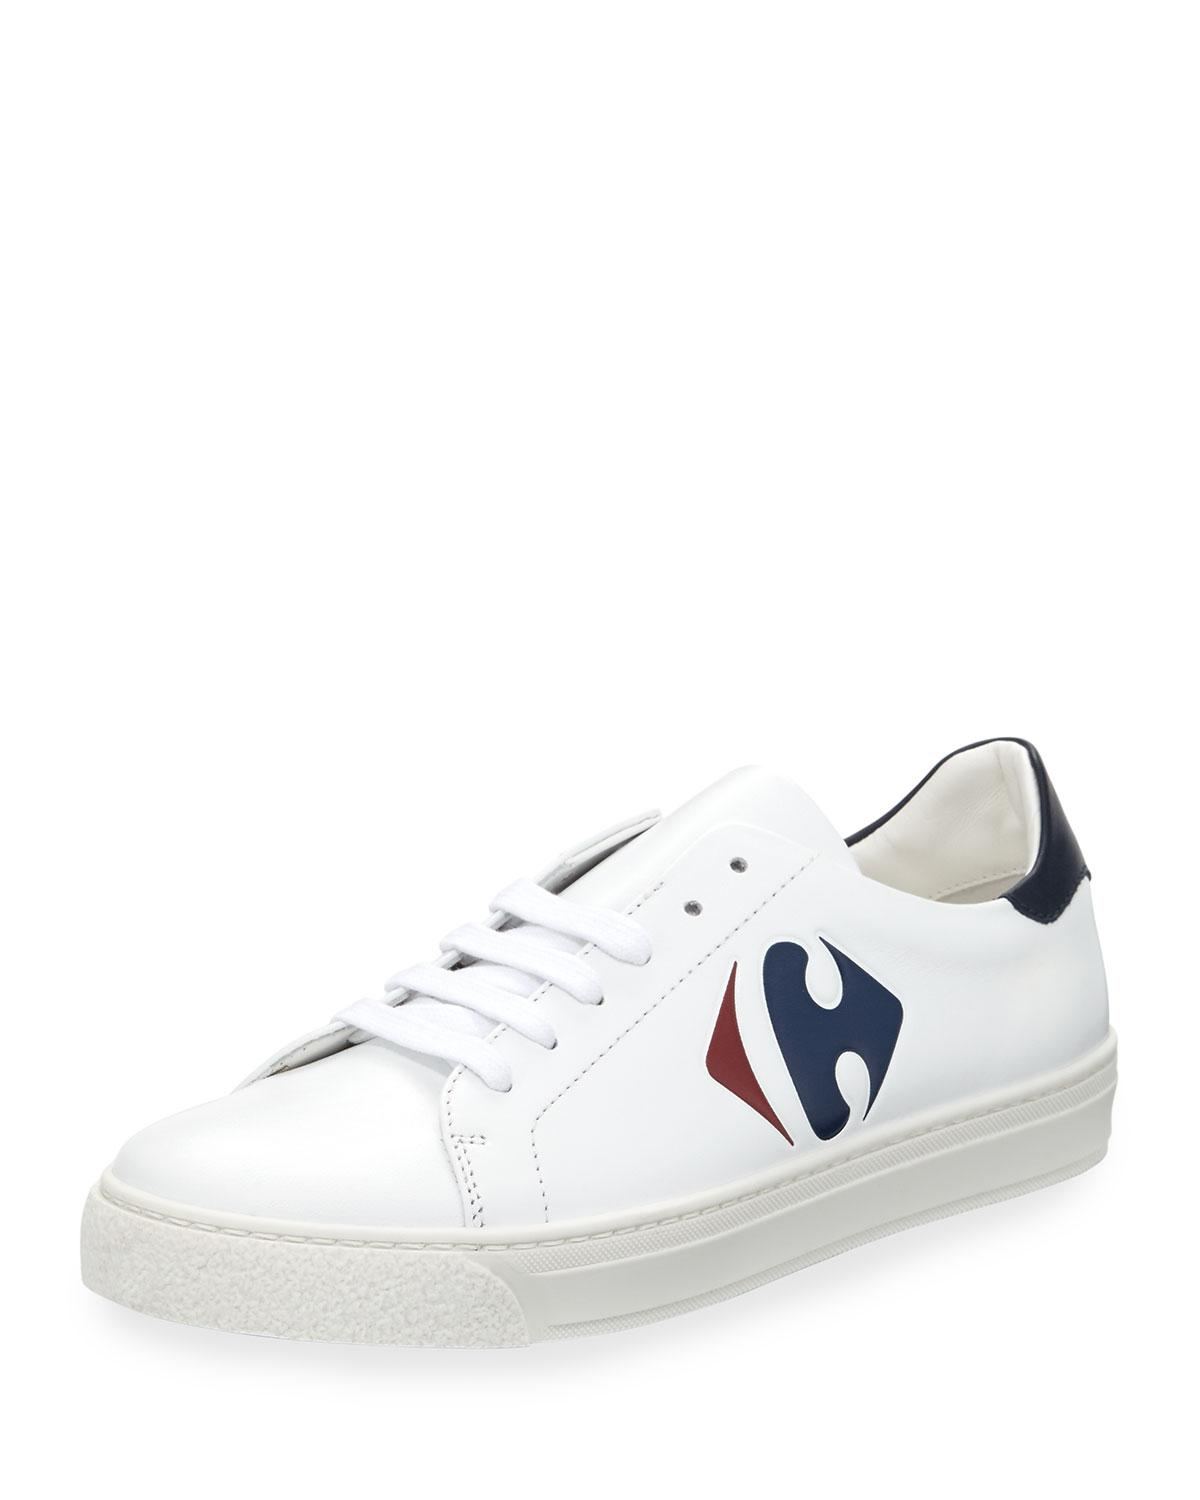 Tennis Hindmarch Anya Carrefour Leather White Shoe VMpqSUz